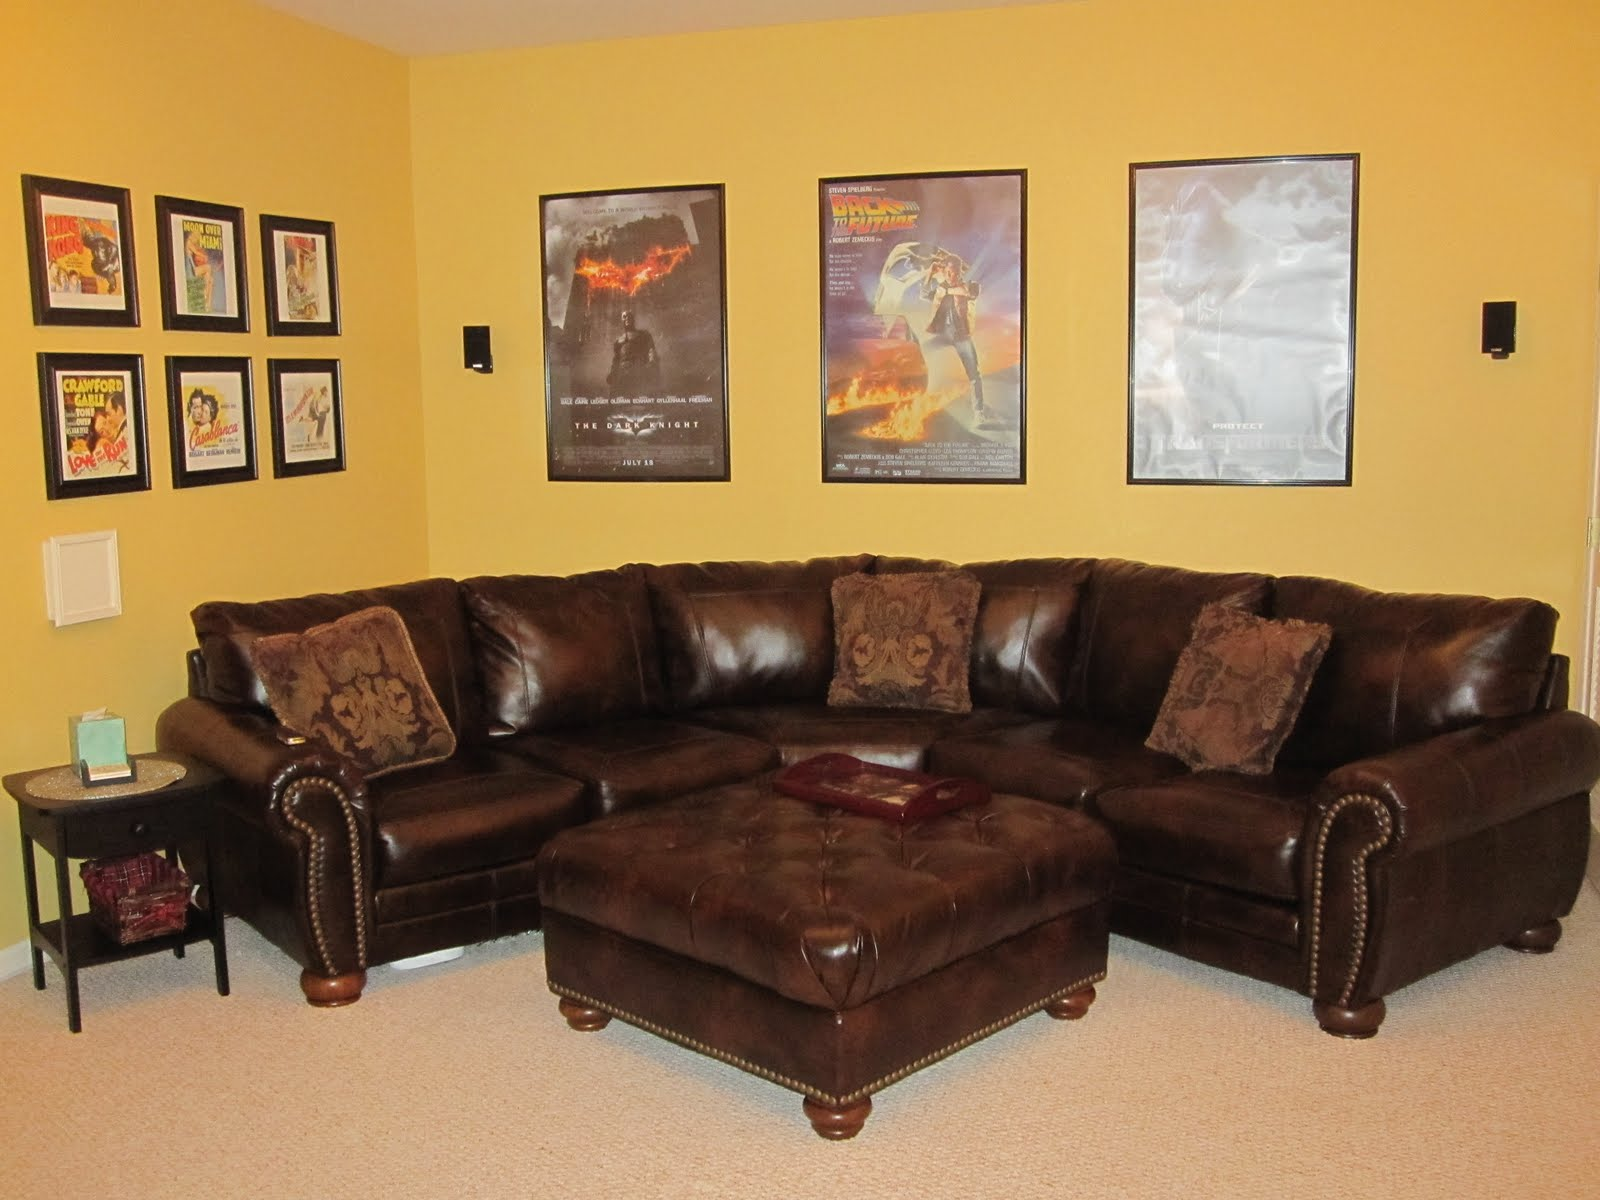 Media Room Couches | Interior Decorating Tips